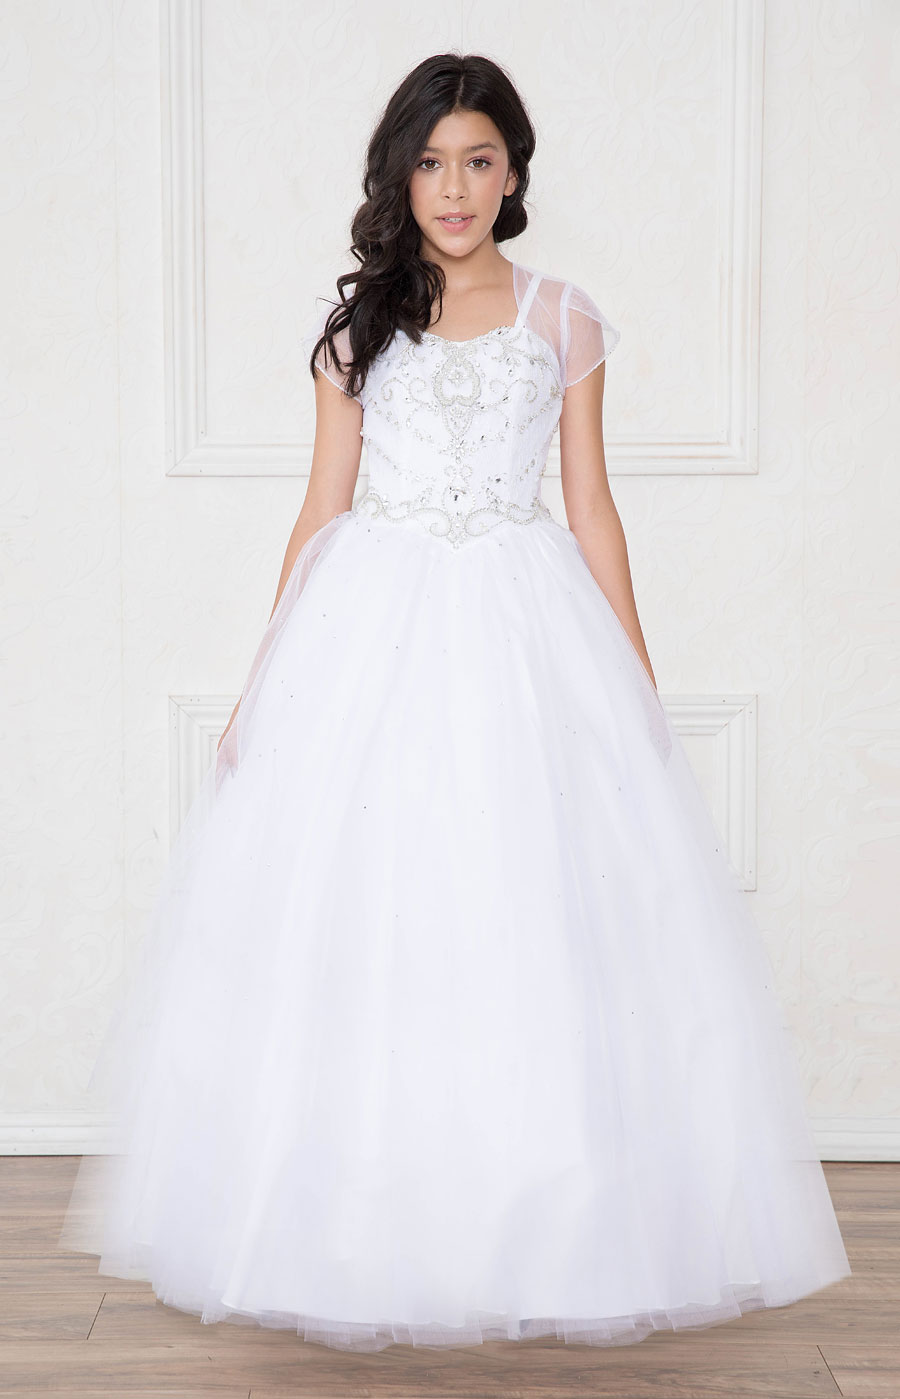 Girls Pageant or Communion Dress with Rhinestone Bodice White